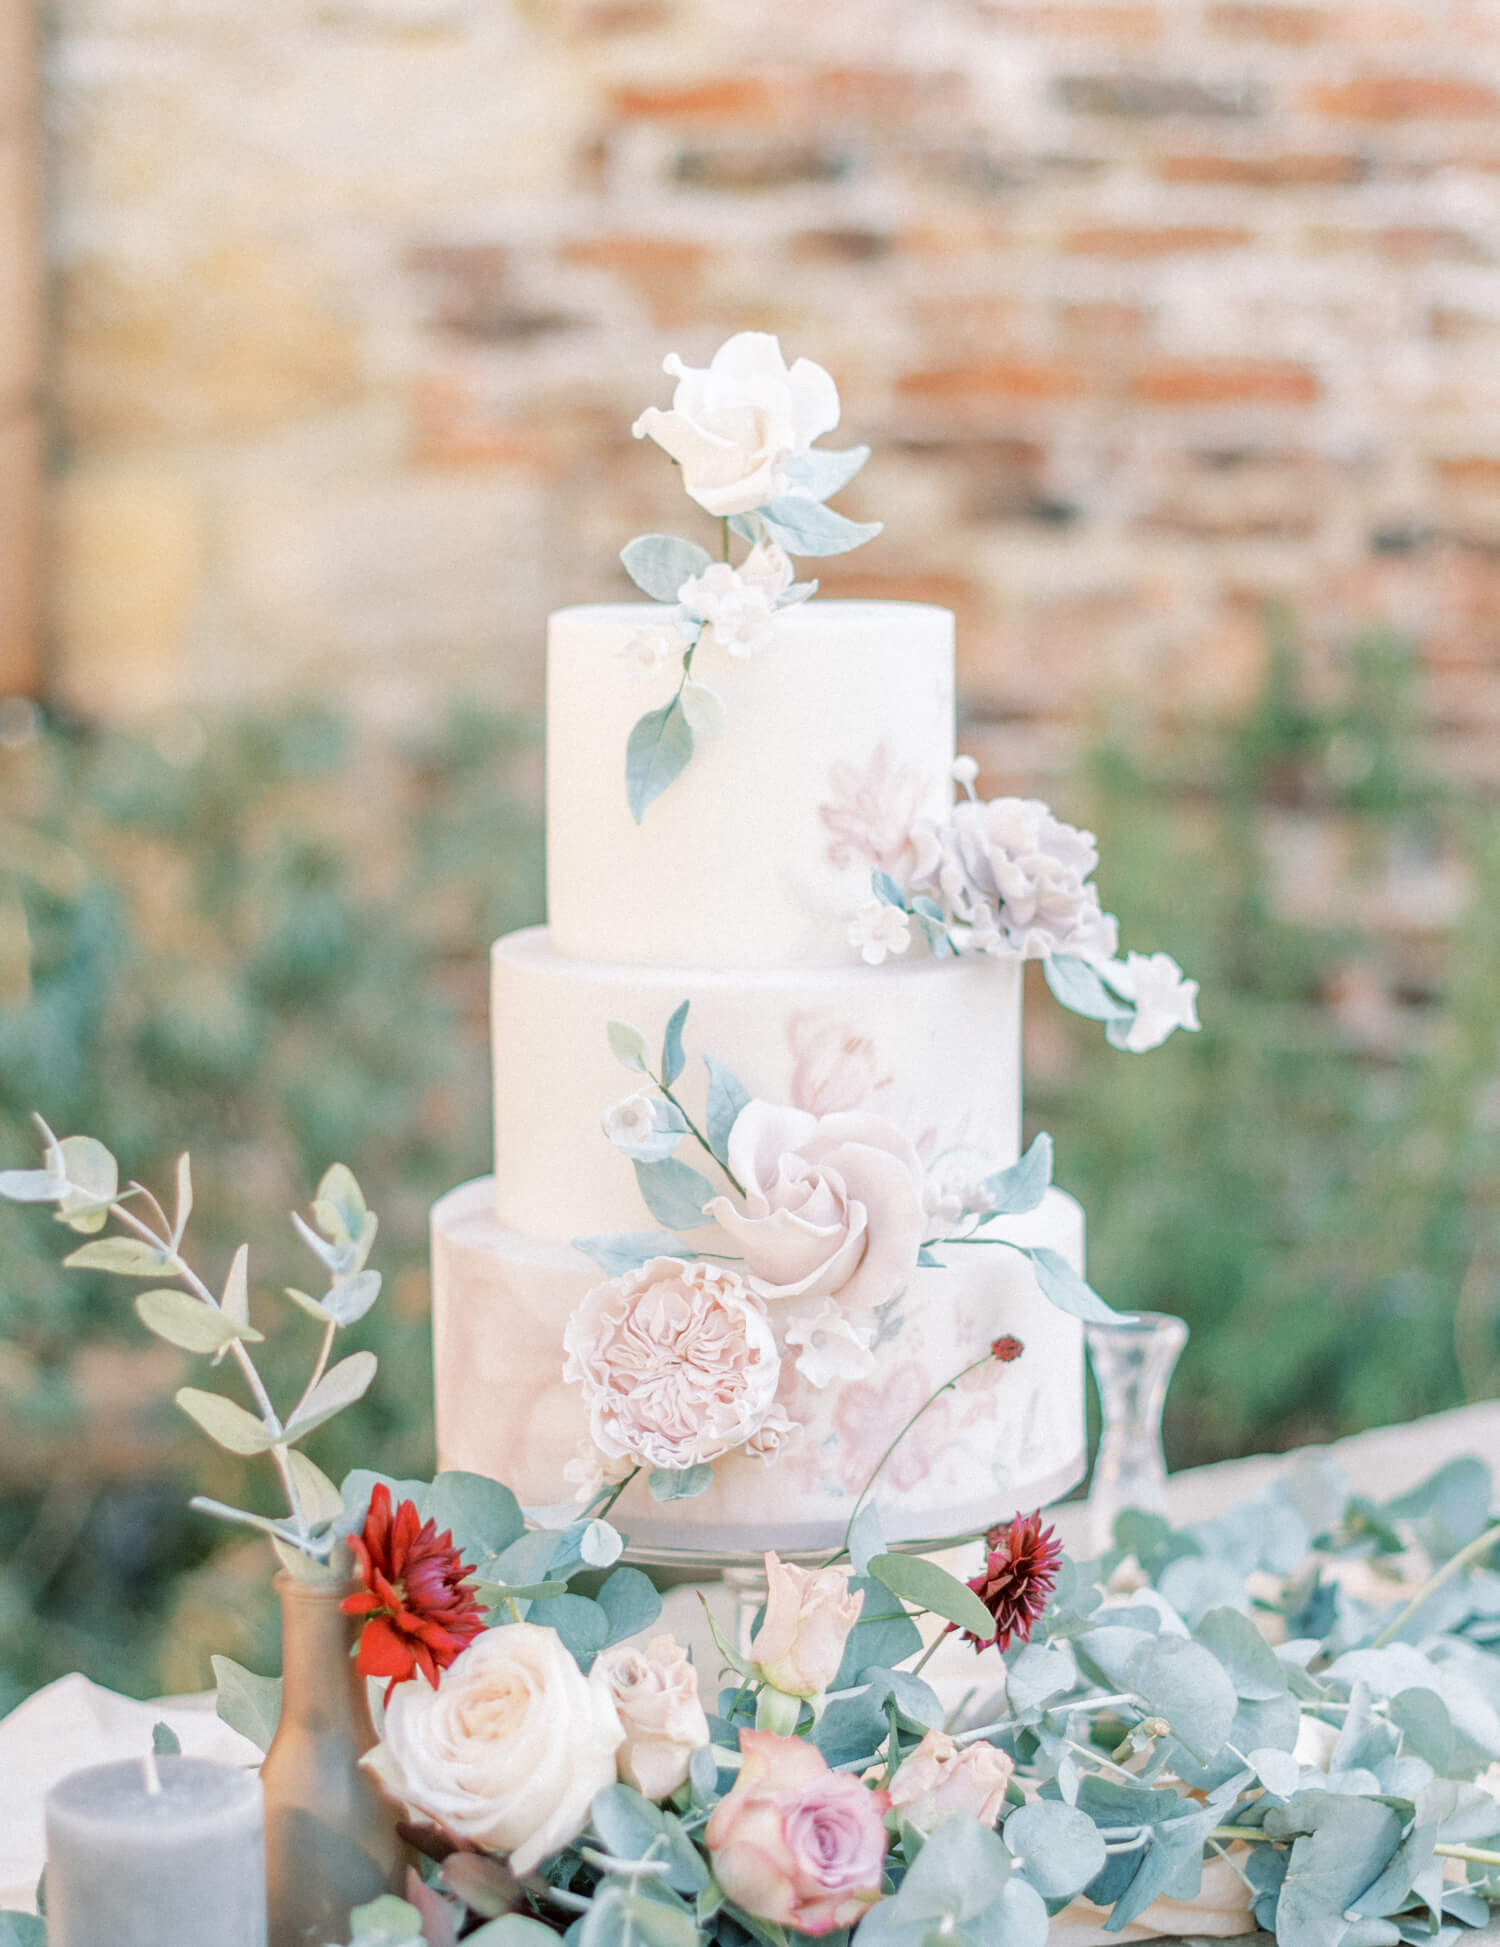 dreamy three tier hand painted pastel wedding cake with blush pink roses and peony sugar flowers by sadie may cakes. photo by cristina ilao photography